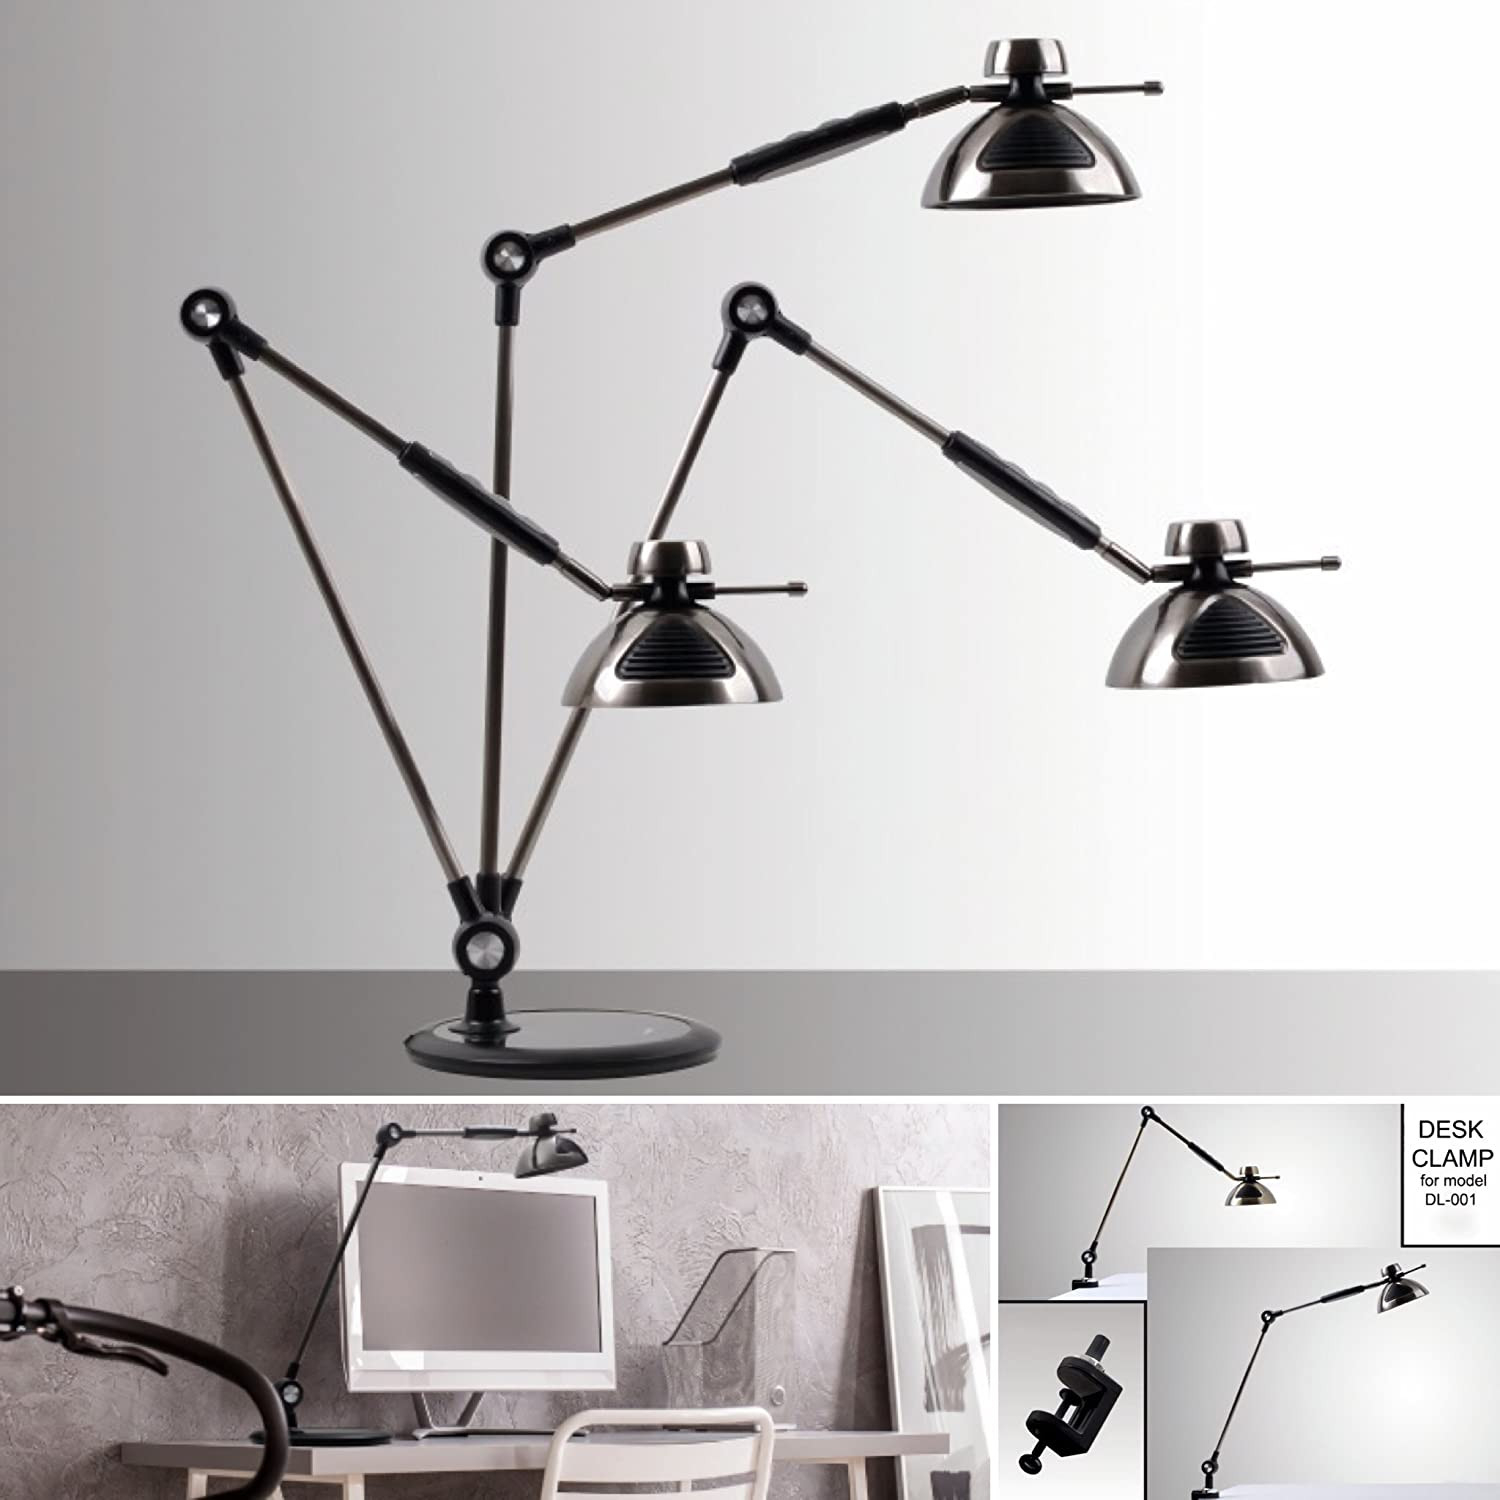 OTUS LED Desk Lamp GESTURE CONTROL, Dimmable Metal Architect Desk ... for Lamp Product Photography  192sfw